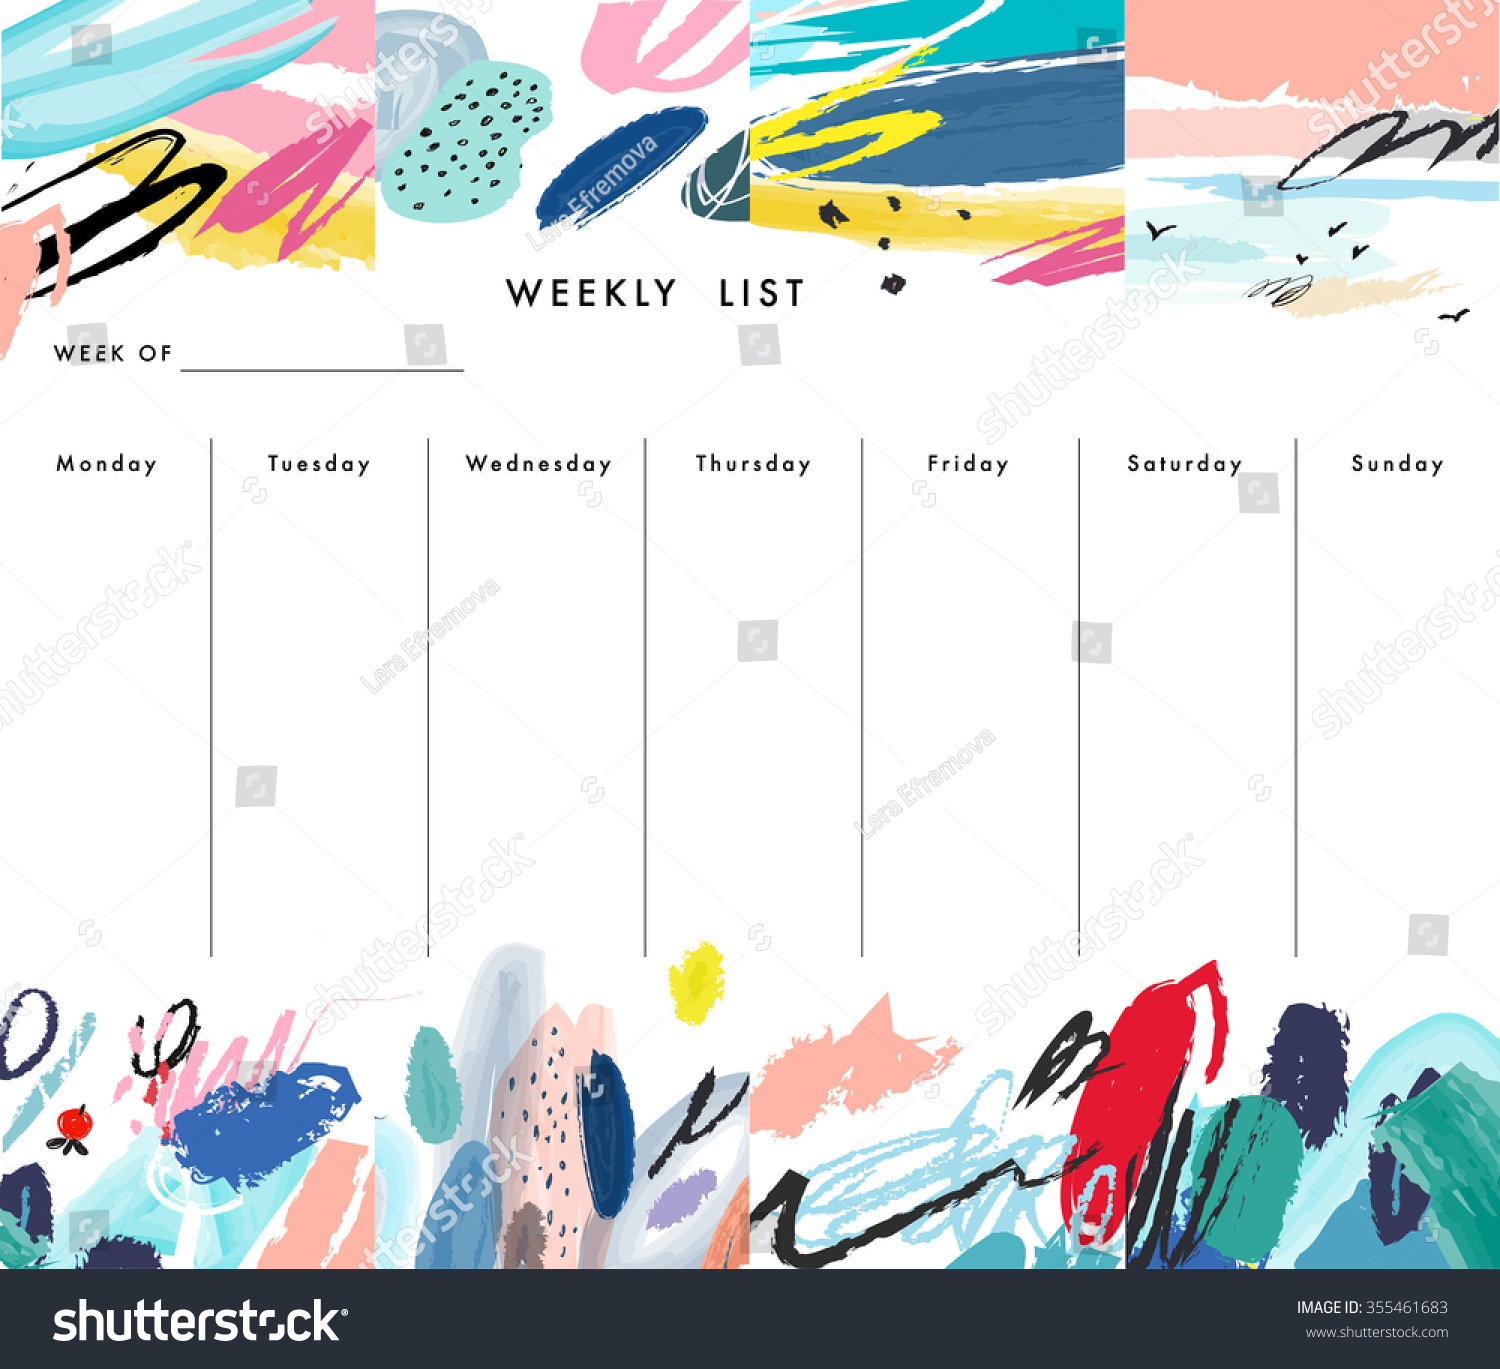 Doc1000765 Weekend Schedule Template Free Weekly Schedule – Weekend Schedule Template